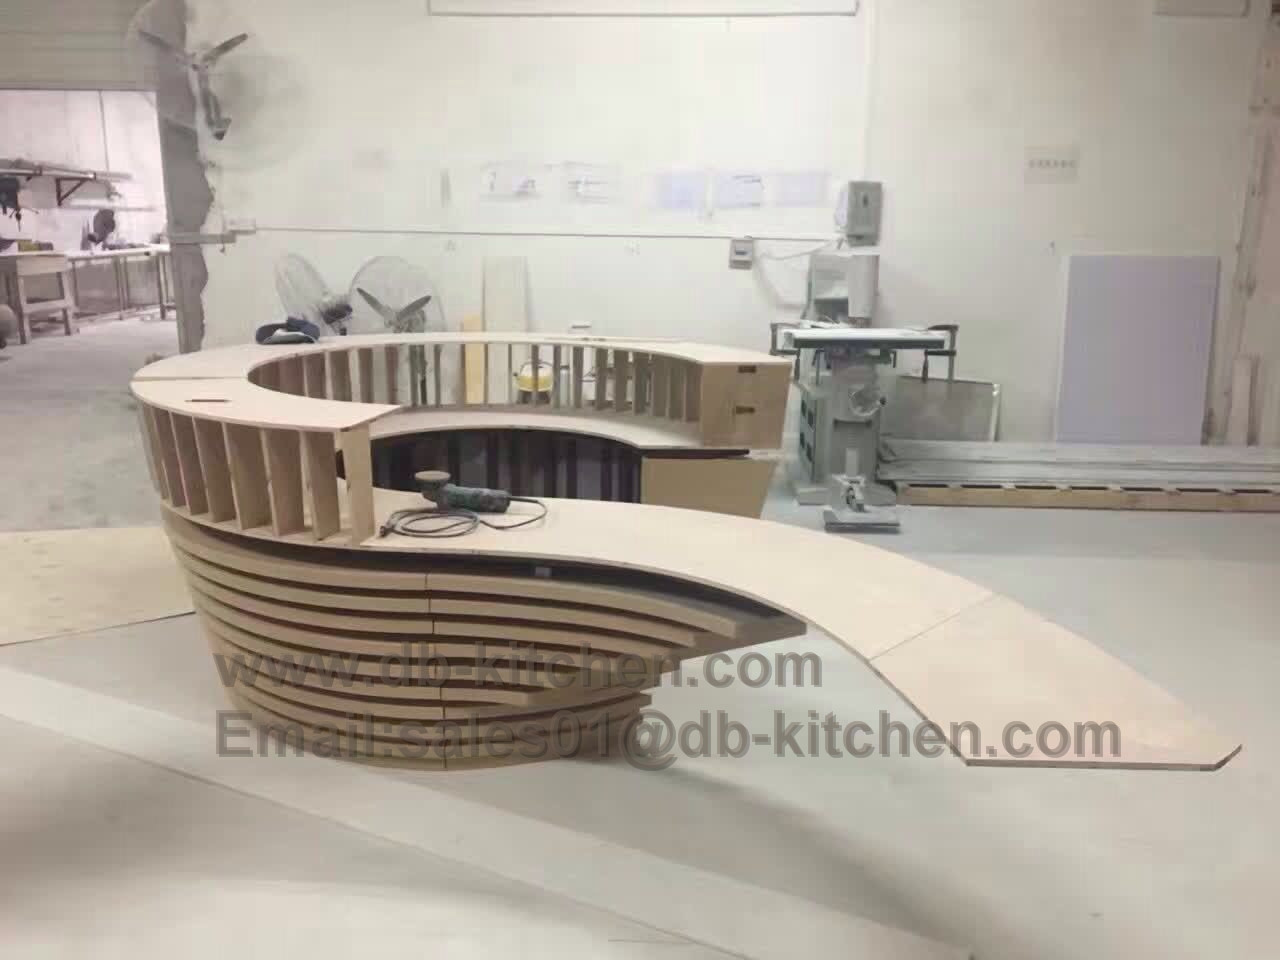 reception tabloe with Engineering super long beech faced plywood